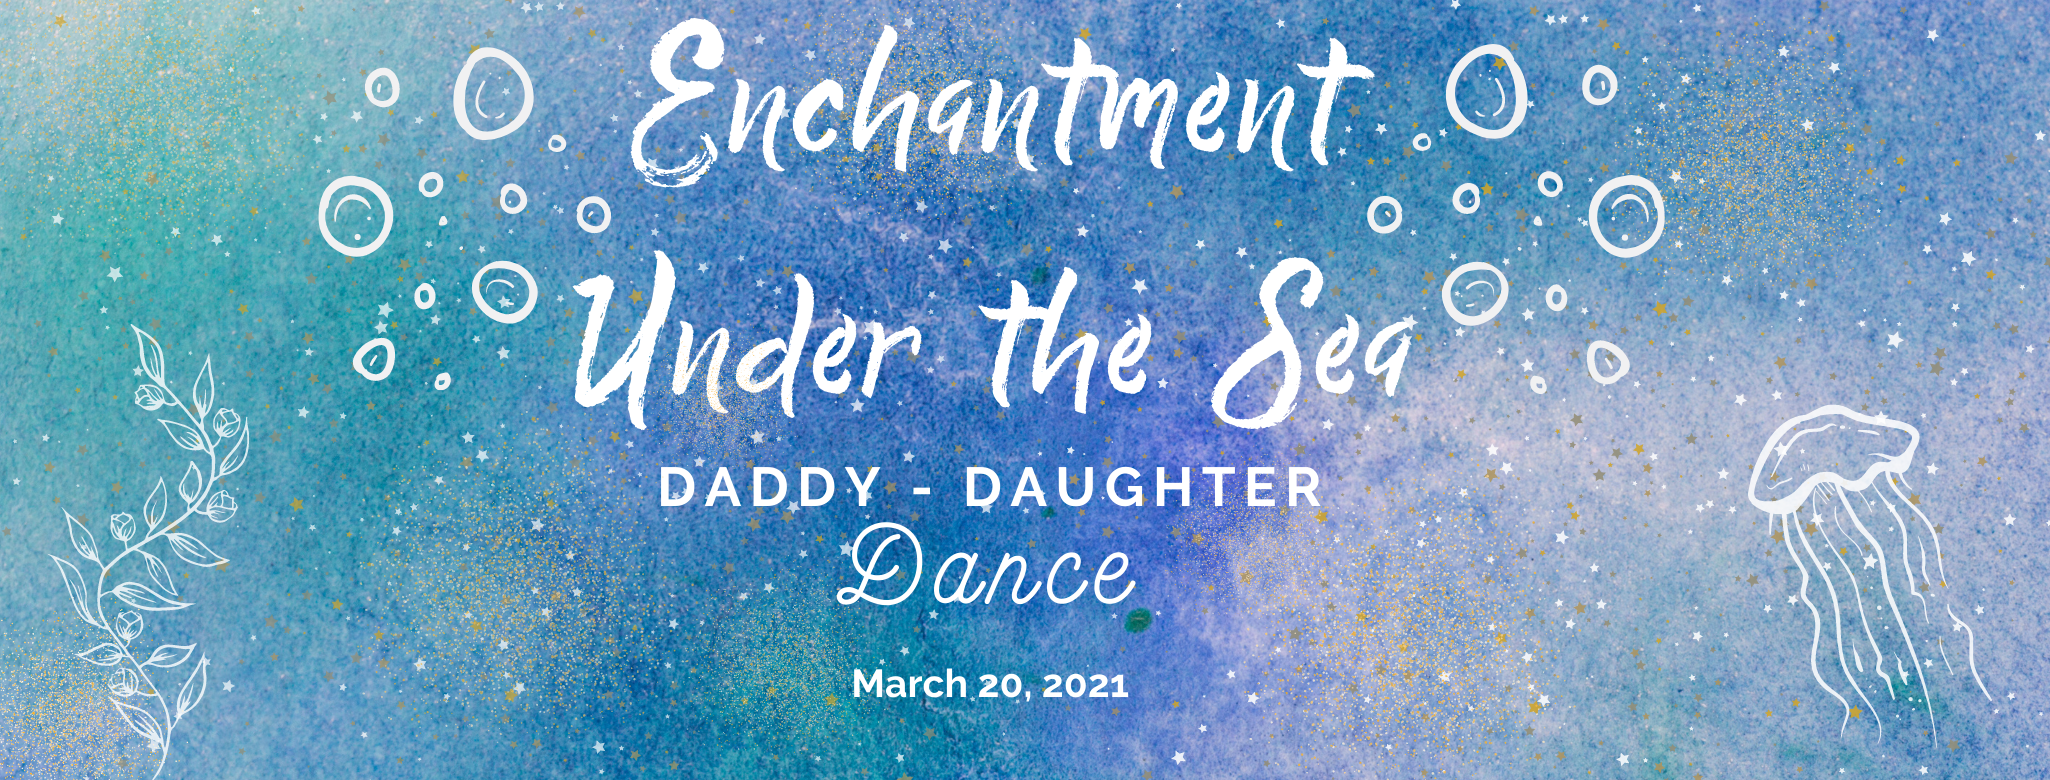 Daddy Daughter Dance FB Cover (2)